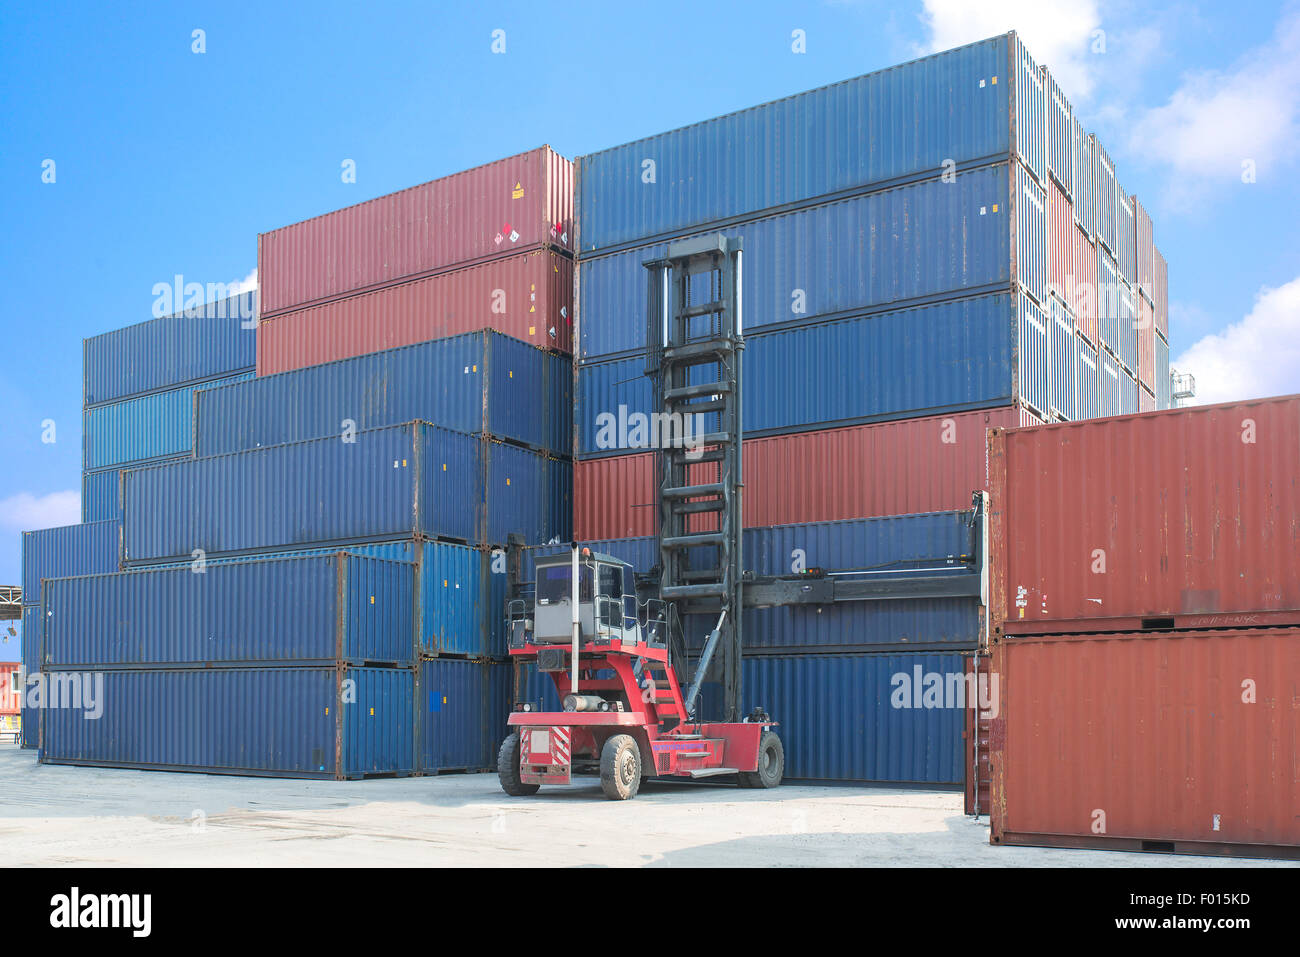 forklift handling container box loading to truck in import export logistic zone - Stock Image